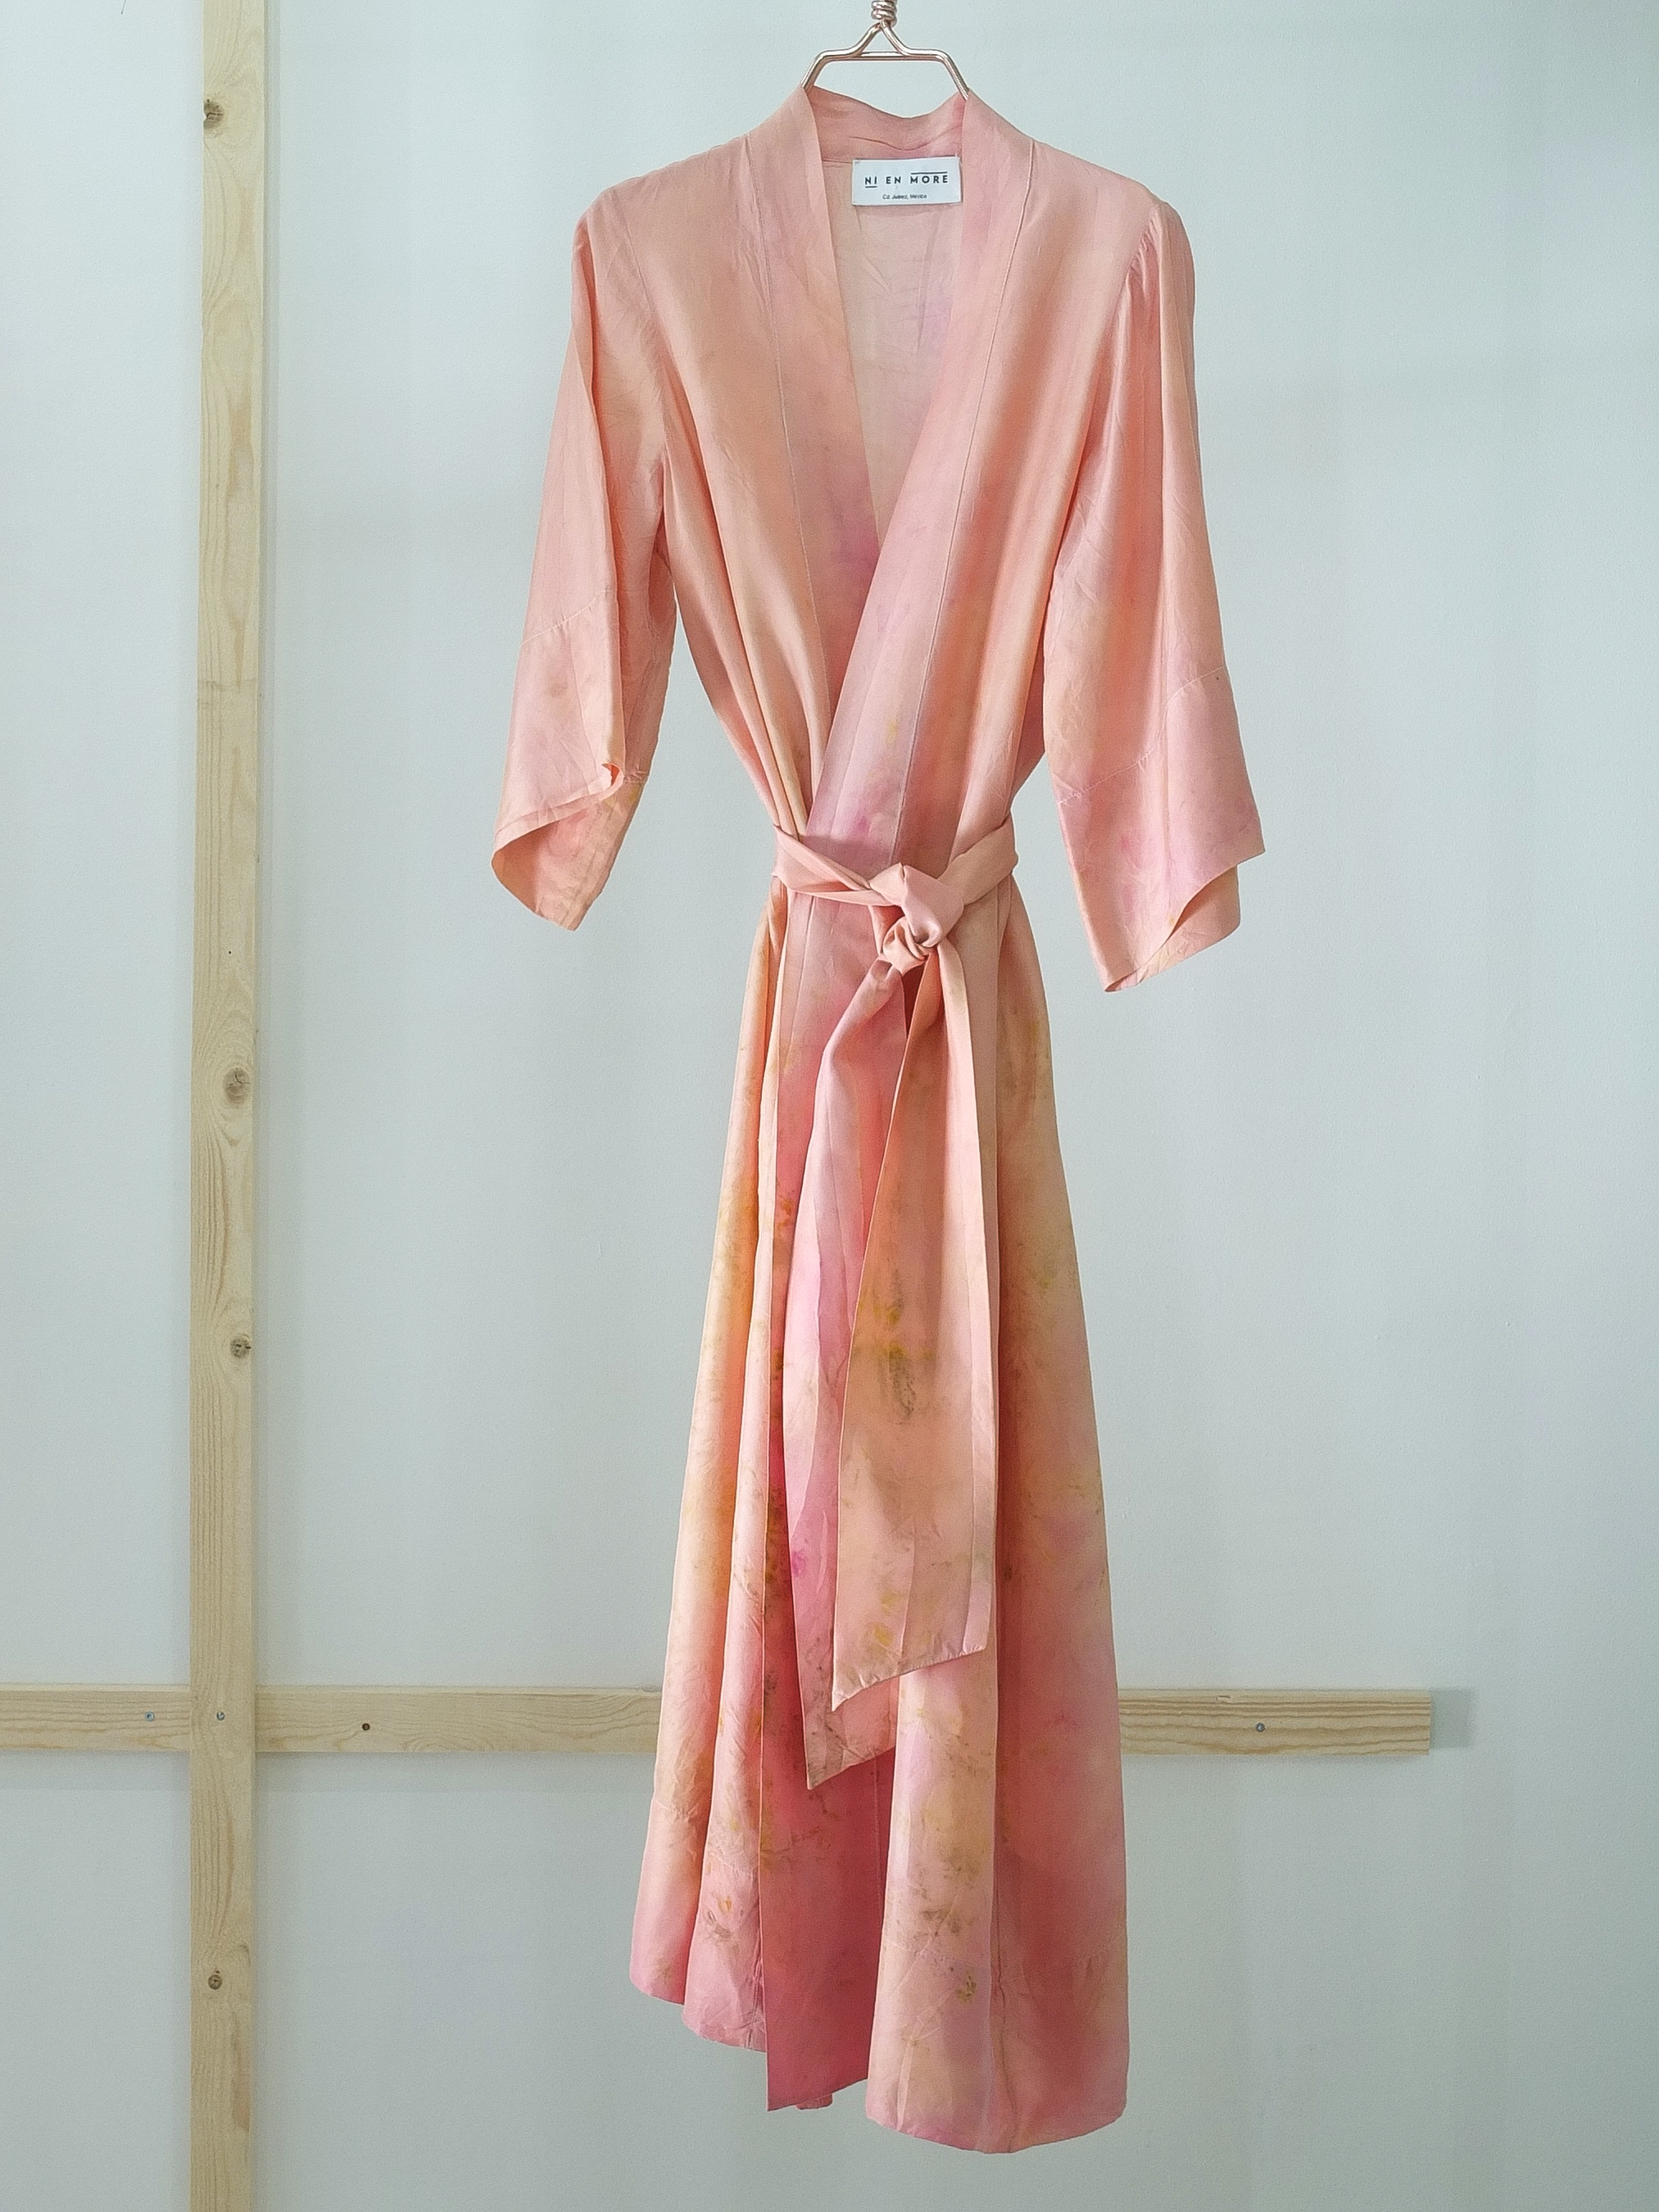 SILK ROBE · No. 8 OF 33 · SIZE MEDIUM